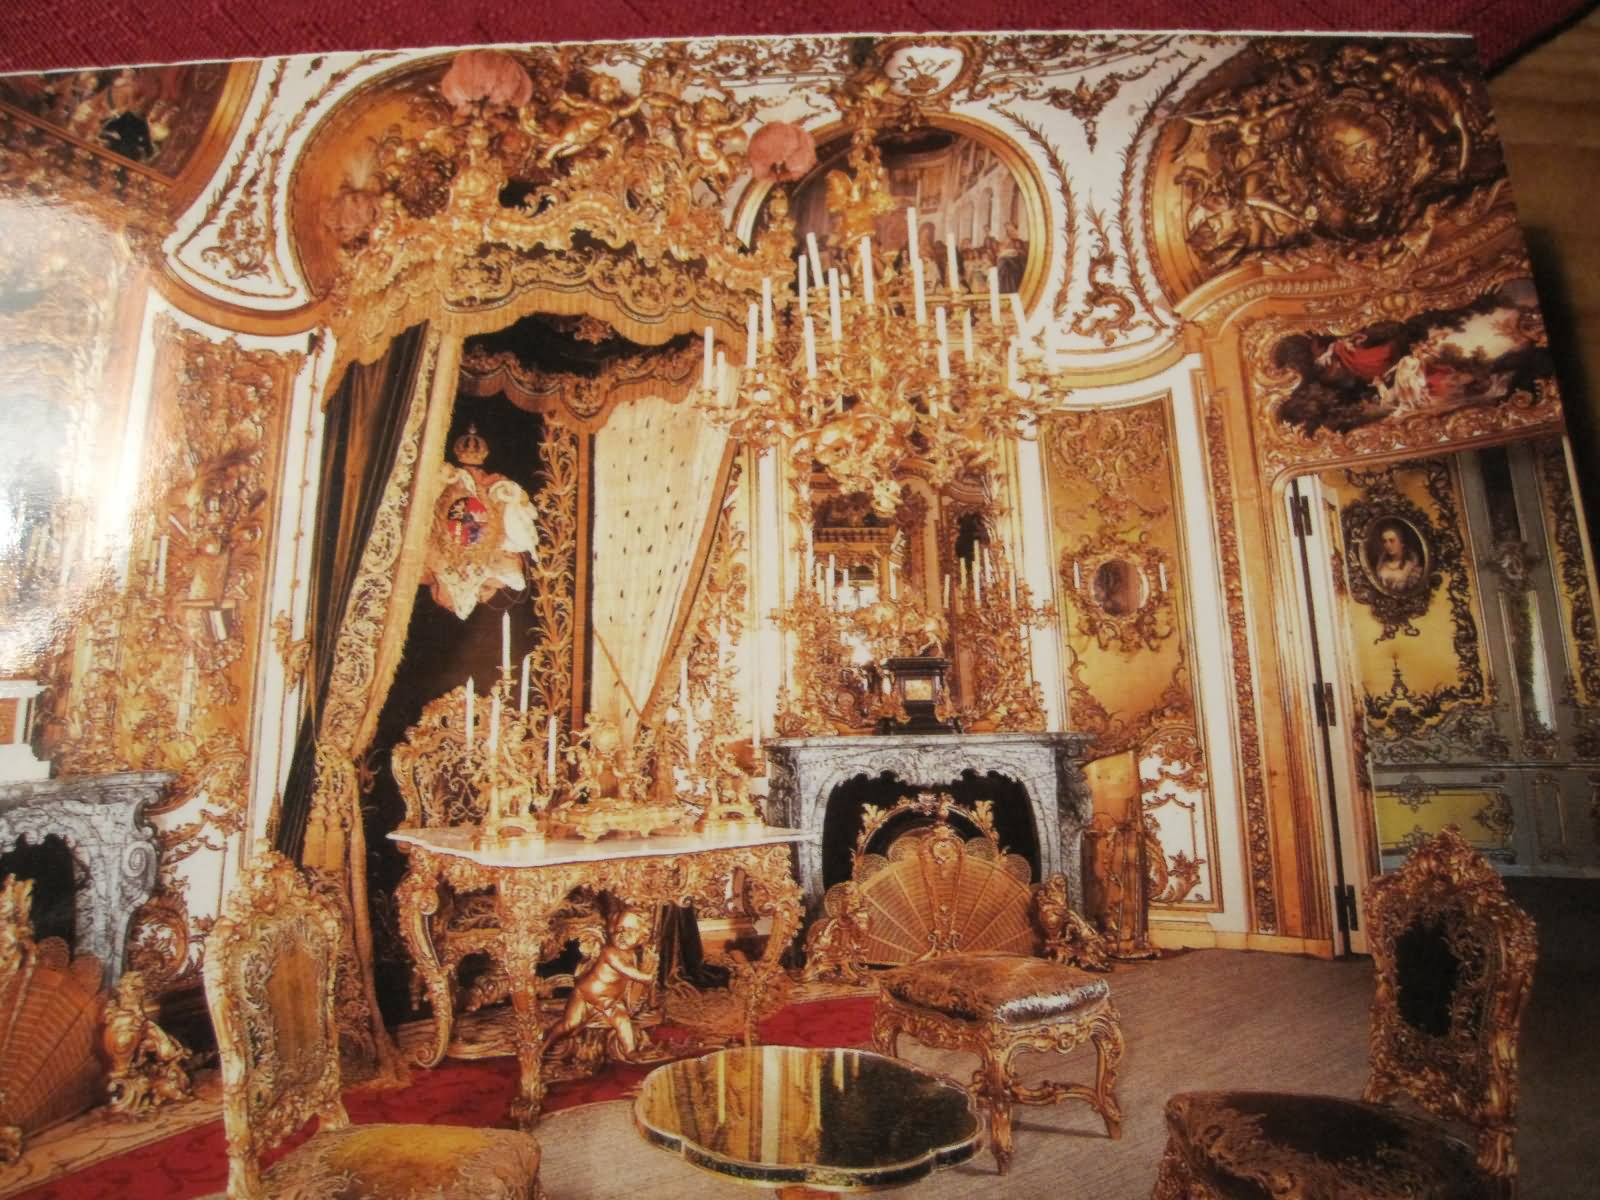 Auudience-Chamber-Inside-The-Linderhof-Palace-In-Bavaria-Germany.jpg